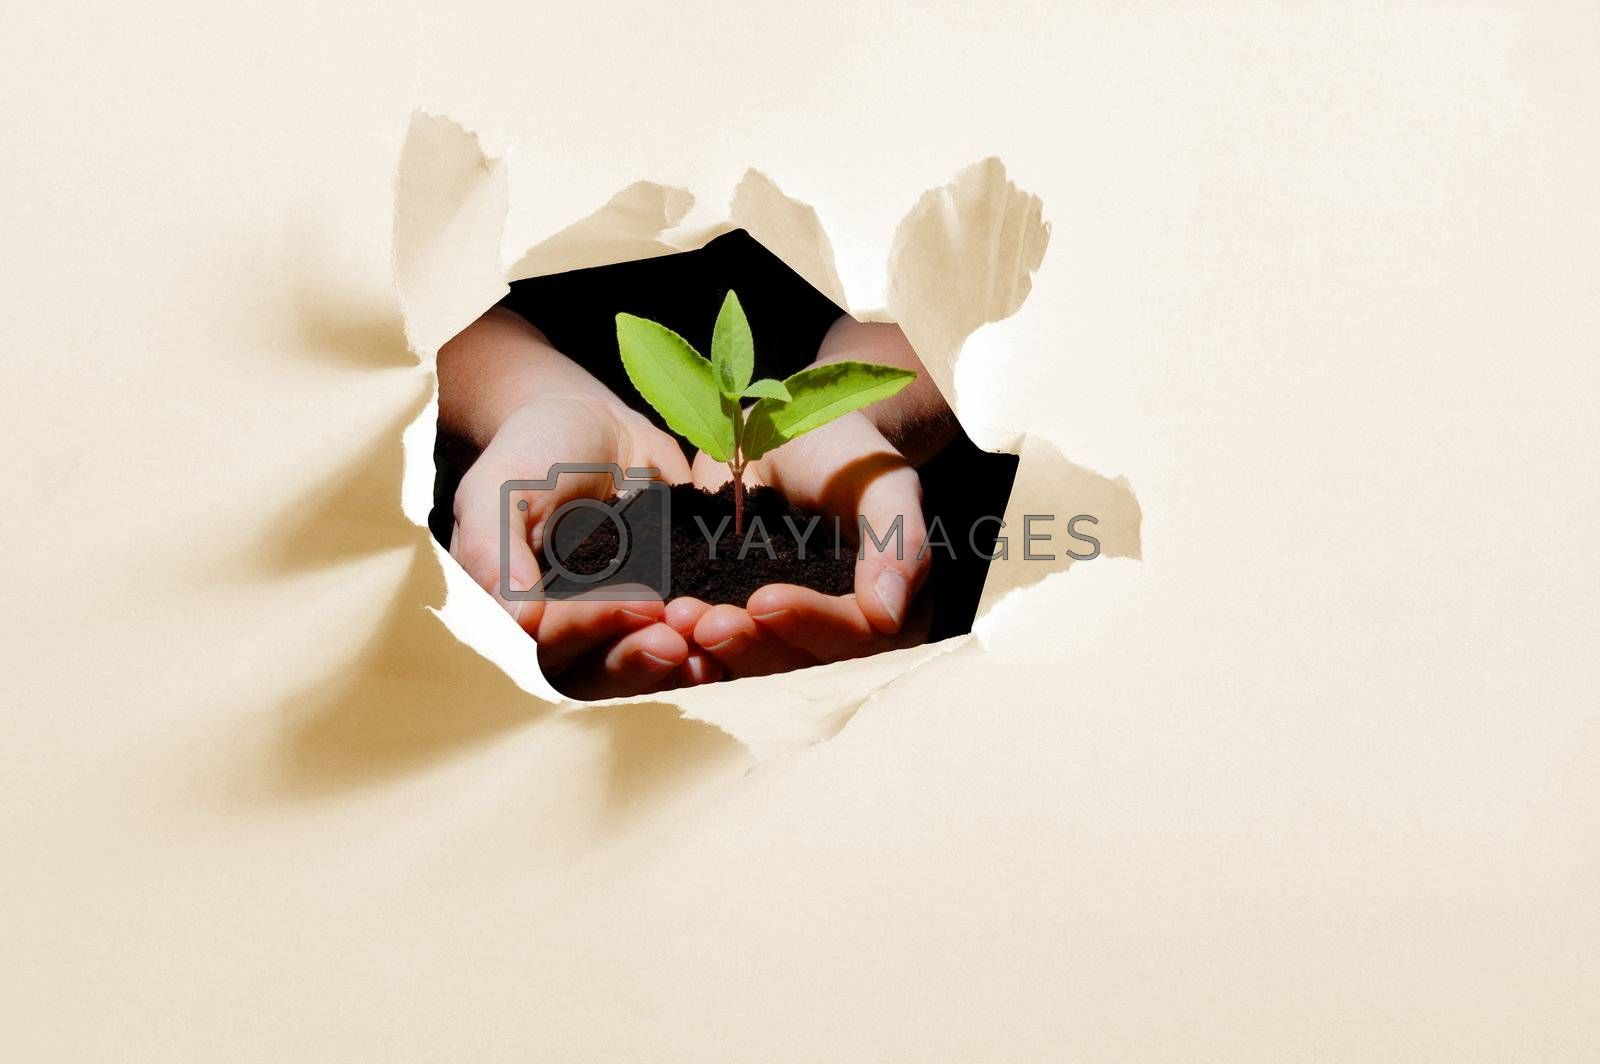 hole in paper and plant in hands showing concept of ecology and growth